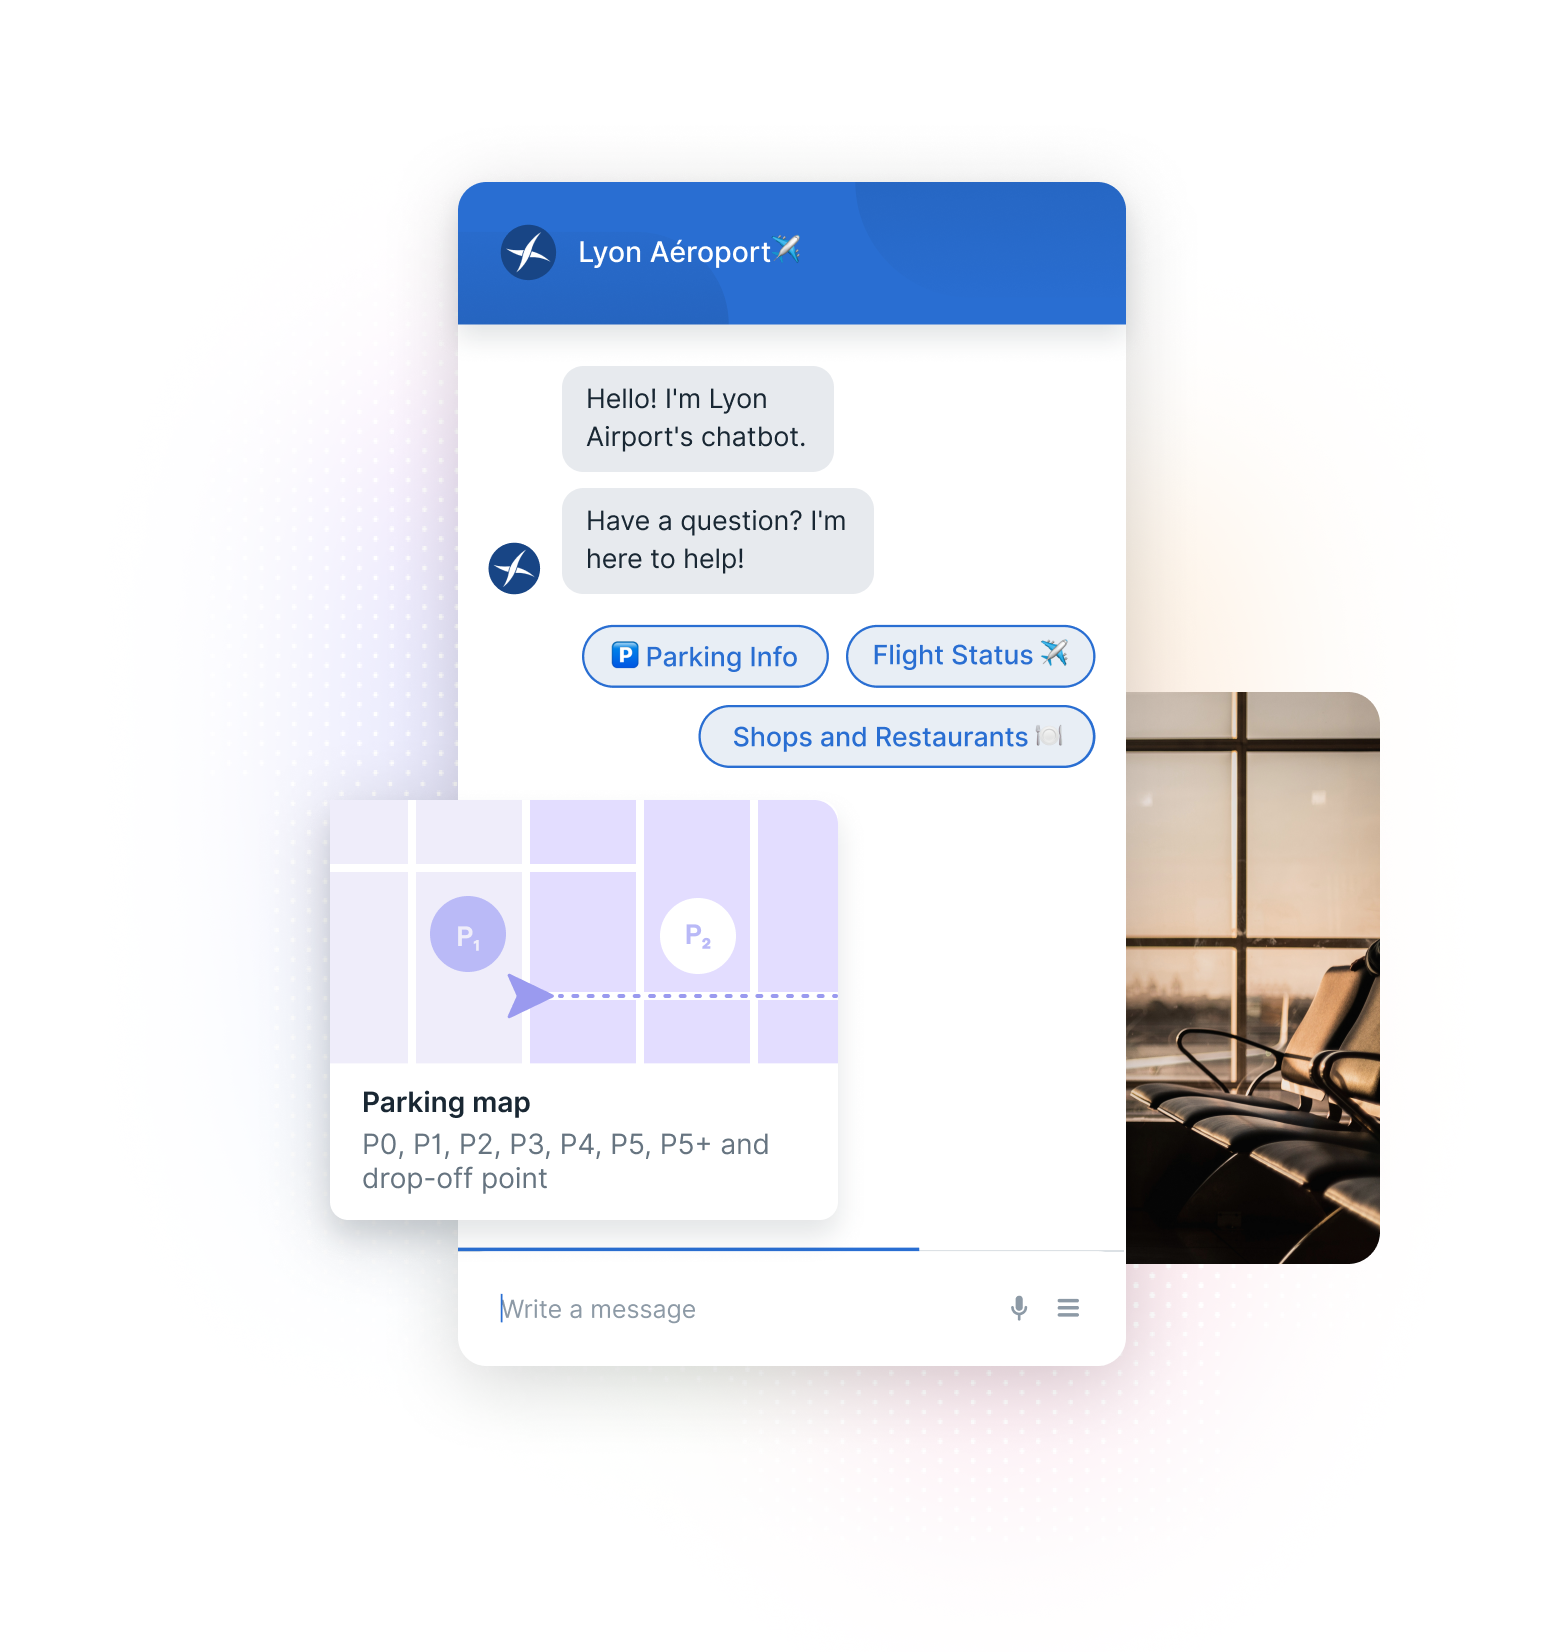 Lyon Airport Chatbot, Parking Map, and Airport Waiting Room